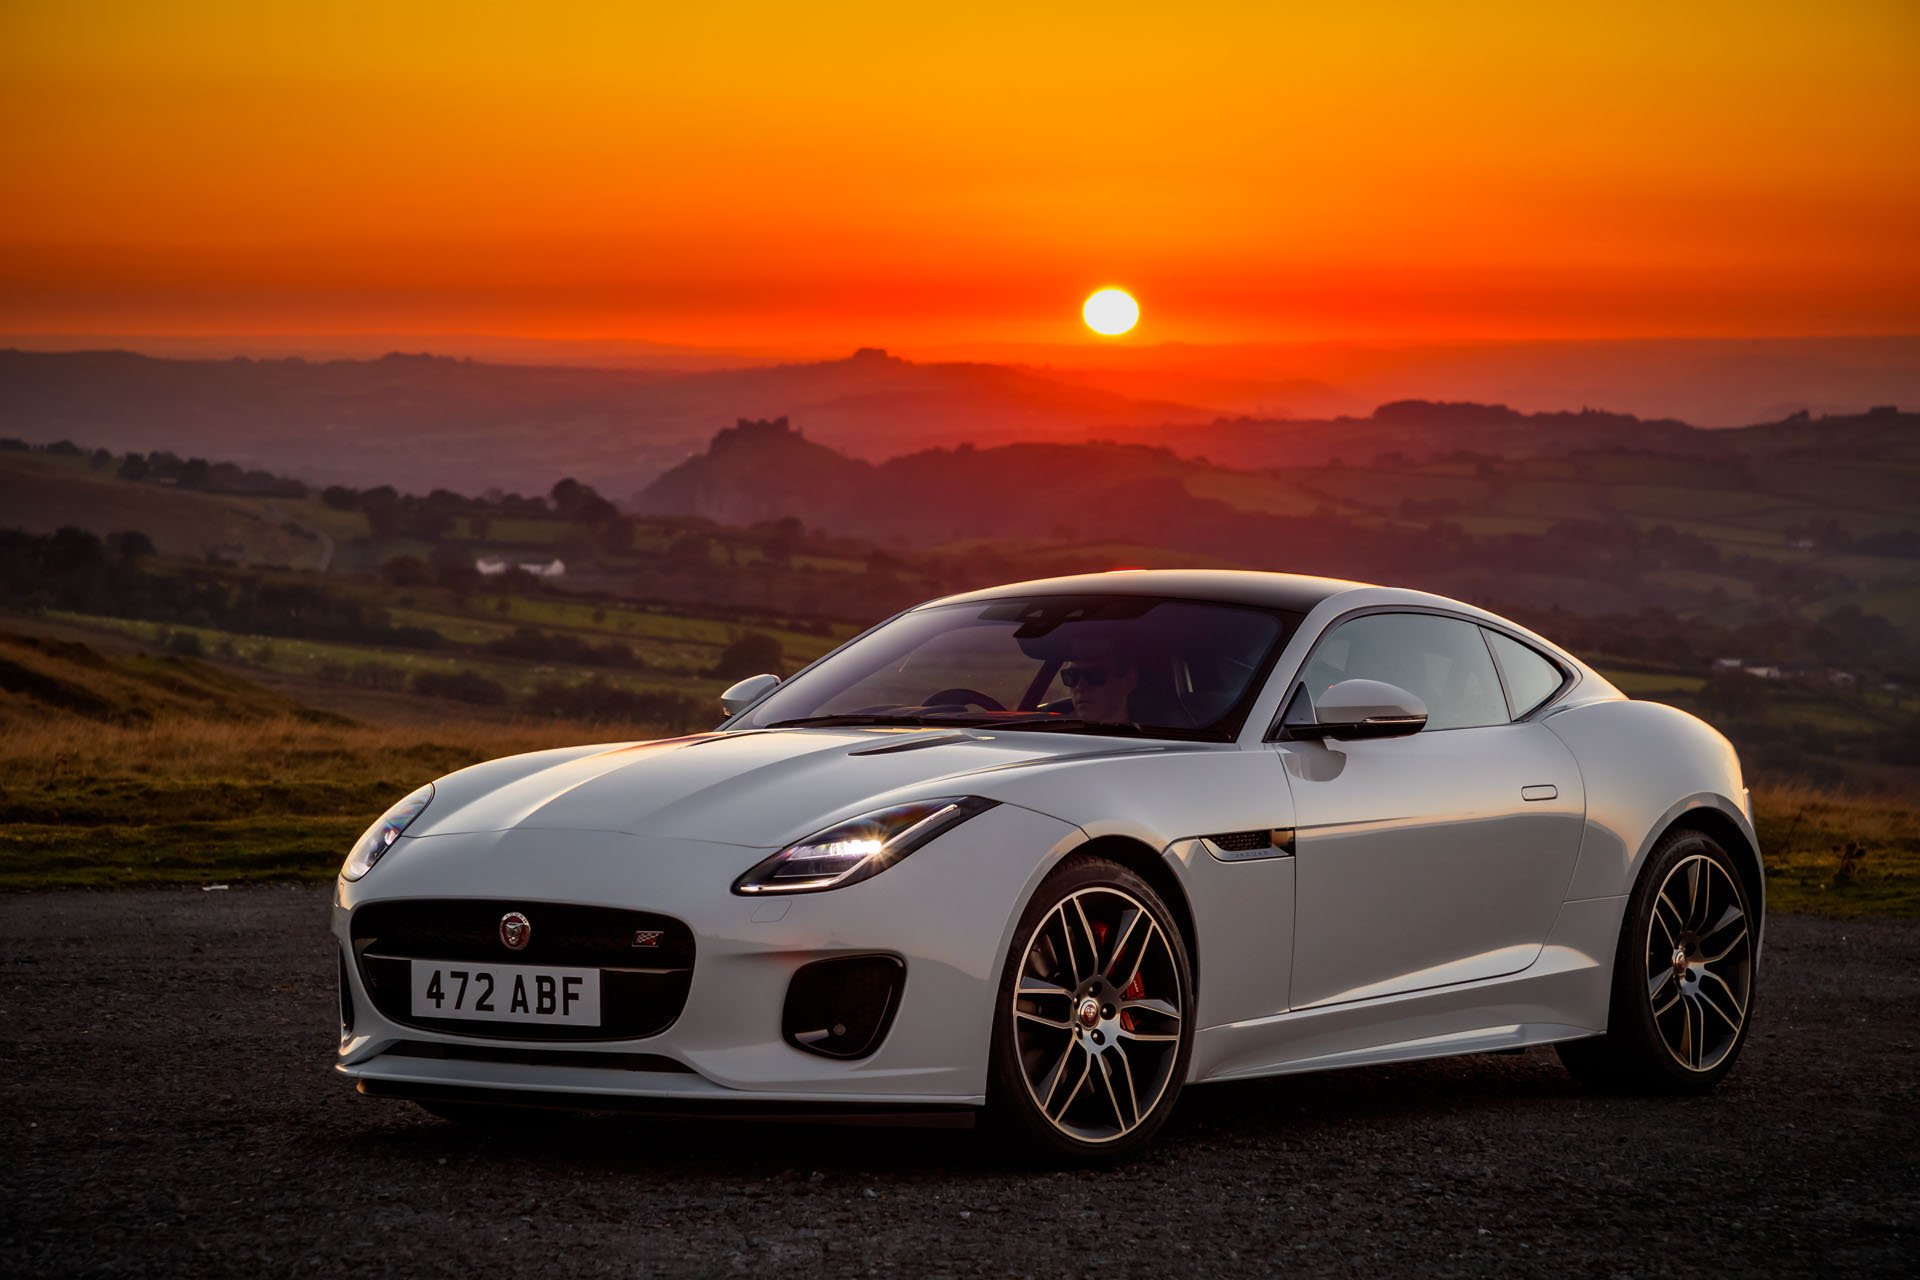 6c0e32ac-jaguar-f-type-chequered-flag-edition-10